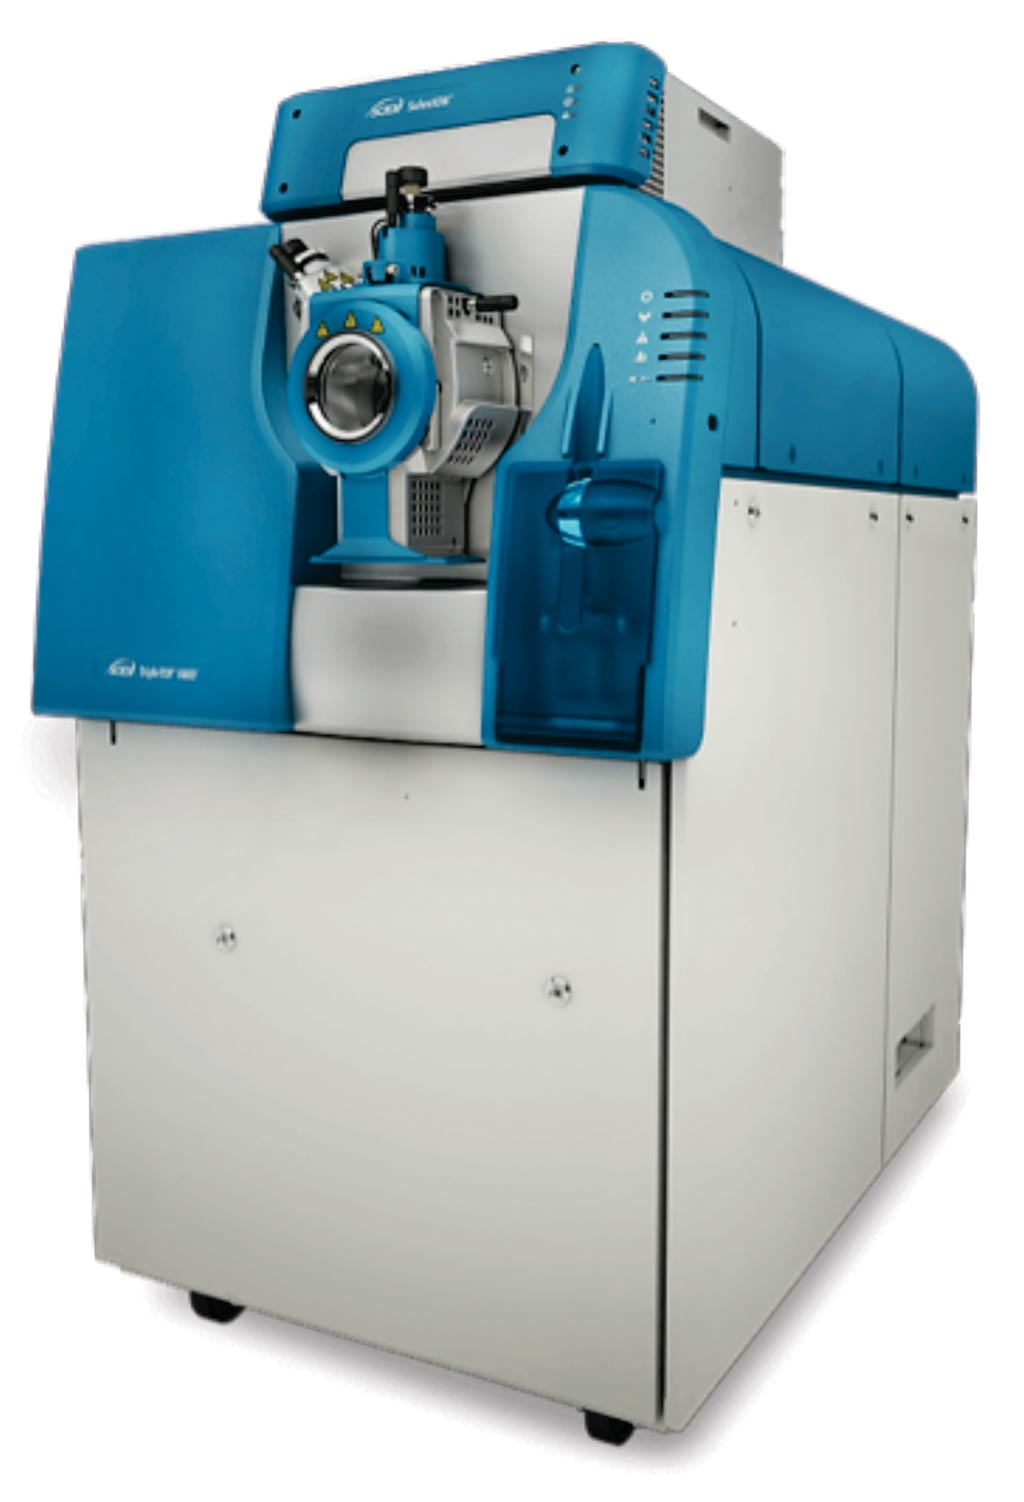 Image: The TripleTOF 6600 Quadrupole Time-Of-Flight (QTOF) mass analyzer (Photo courtesy of Sciex).